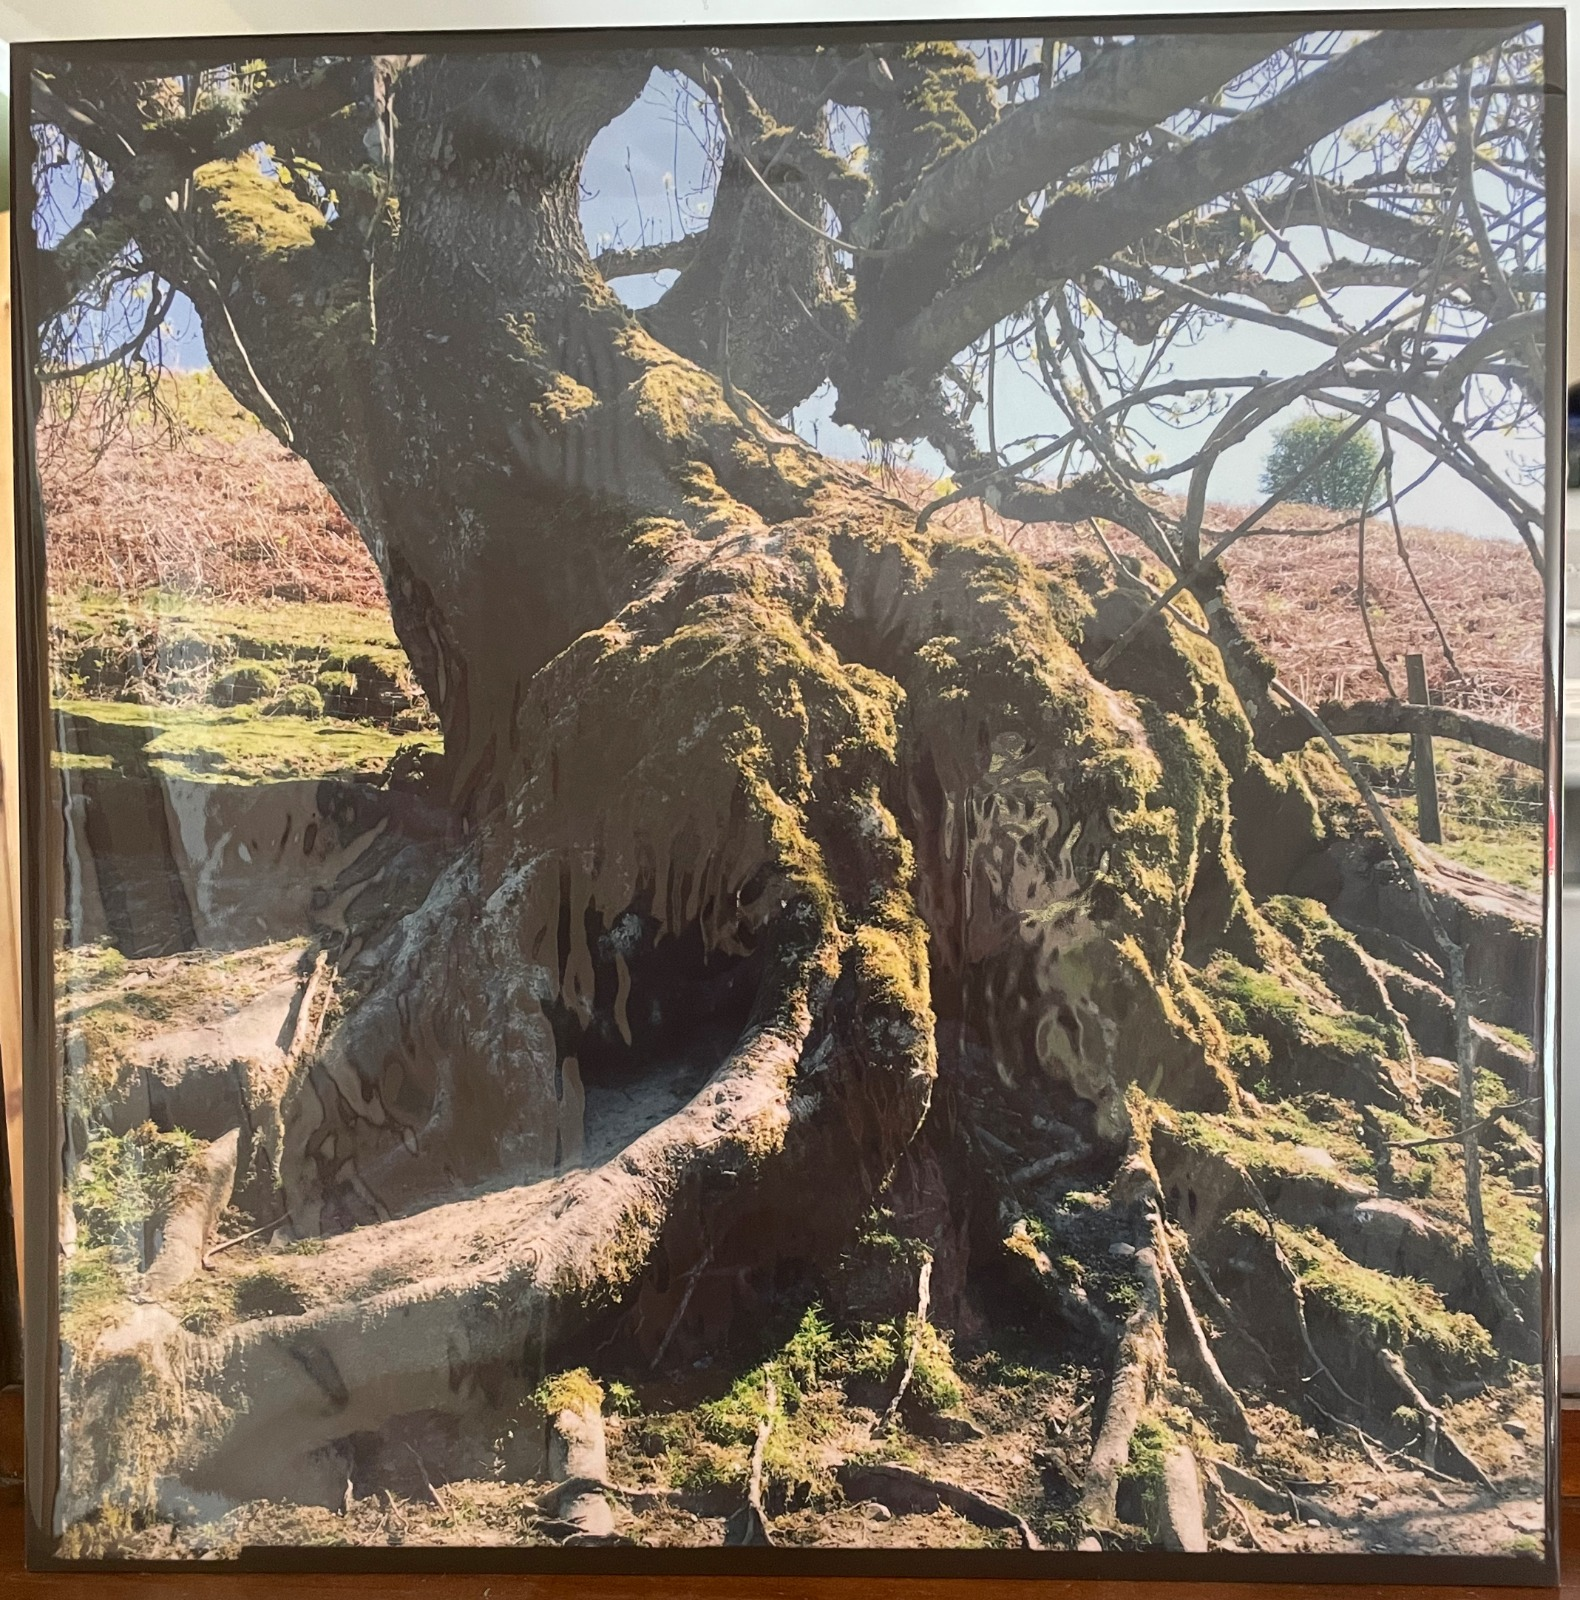 Photographic image of roots of an ancient willow growing at an angle